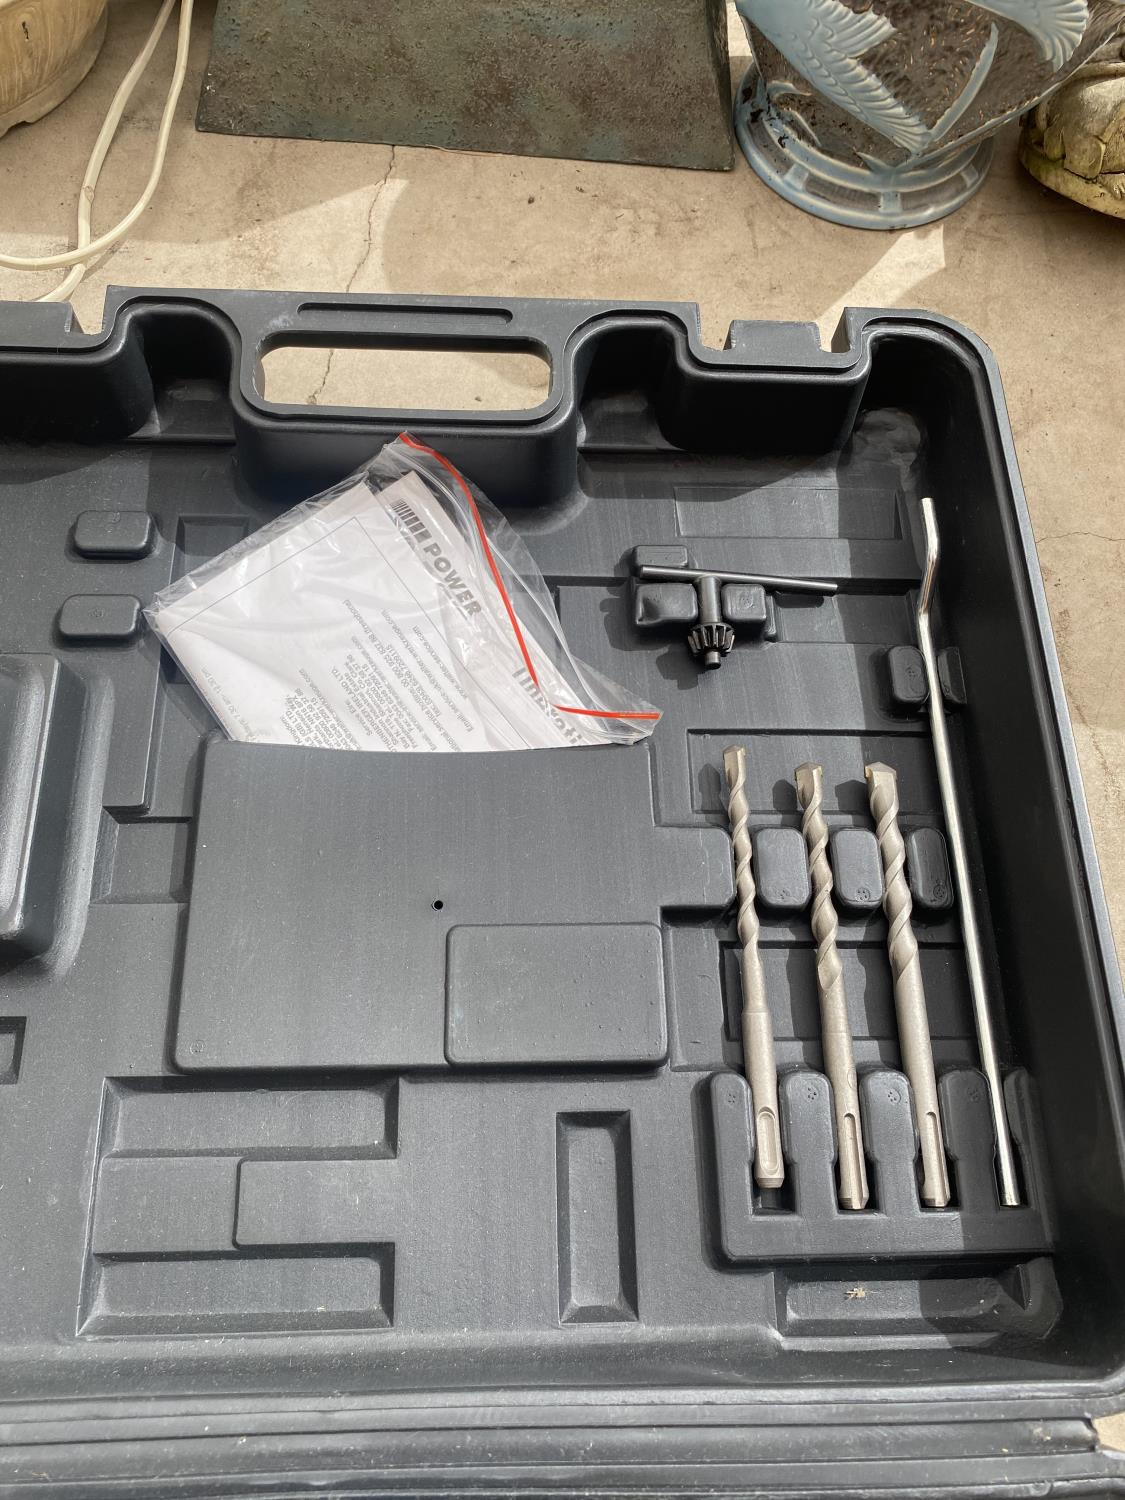 A POWER CRAFT SDS DRILL WITH VARIOUS SDS DRILL BITS AND R/PLUGS - Image 4 of 4